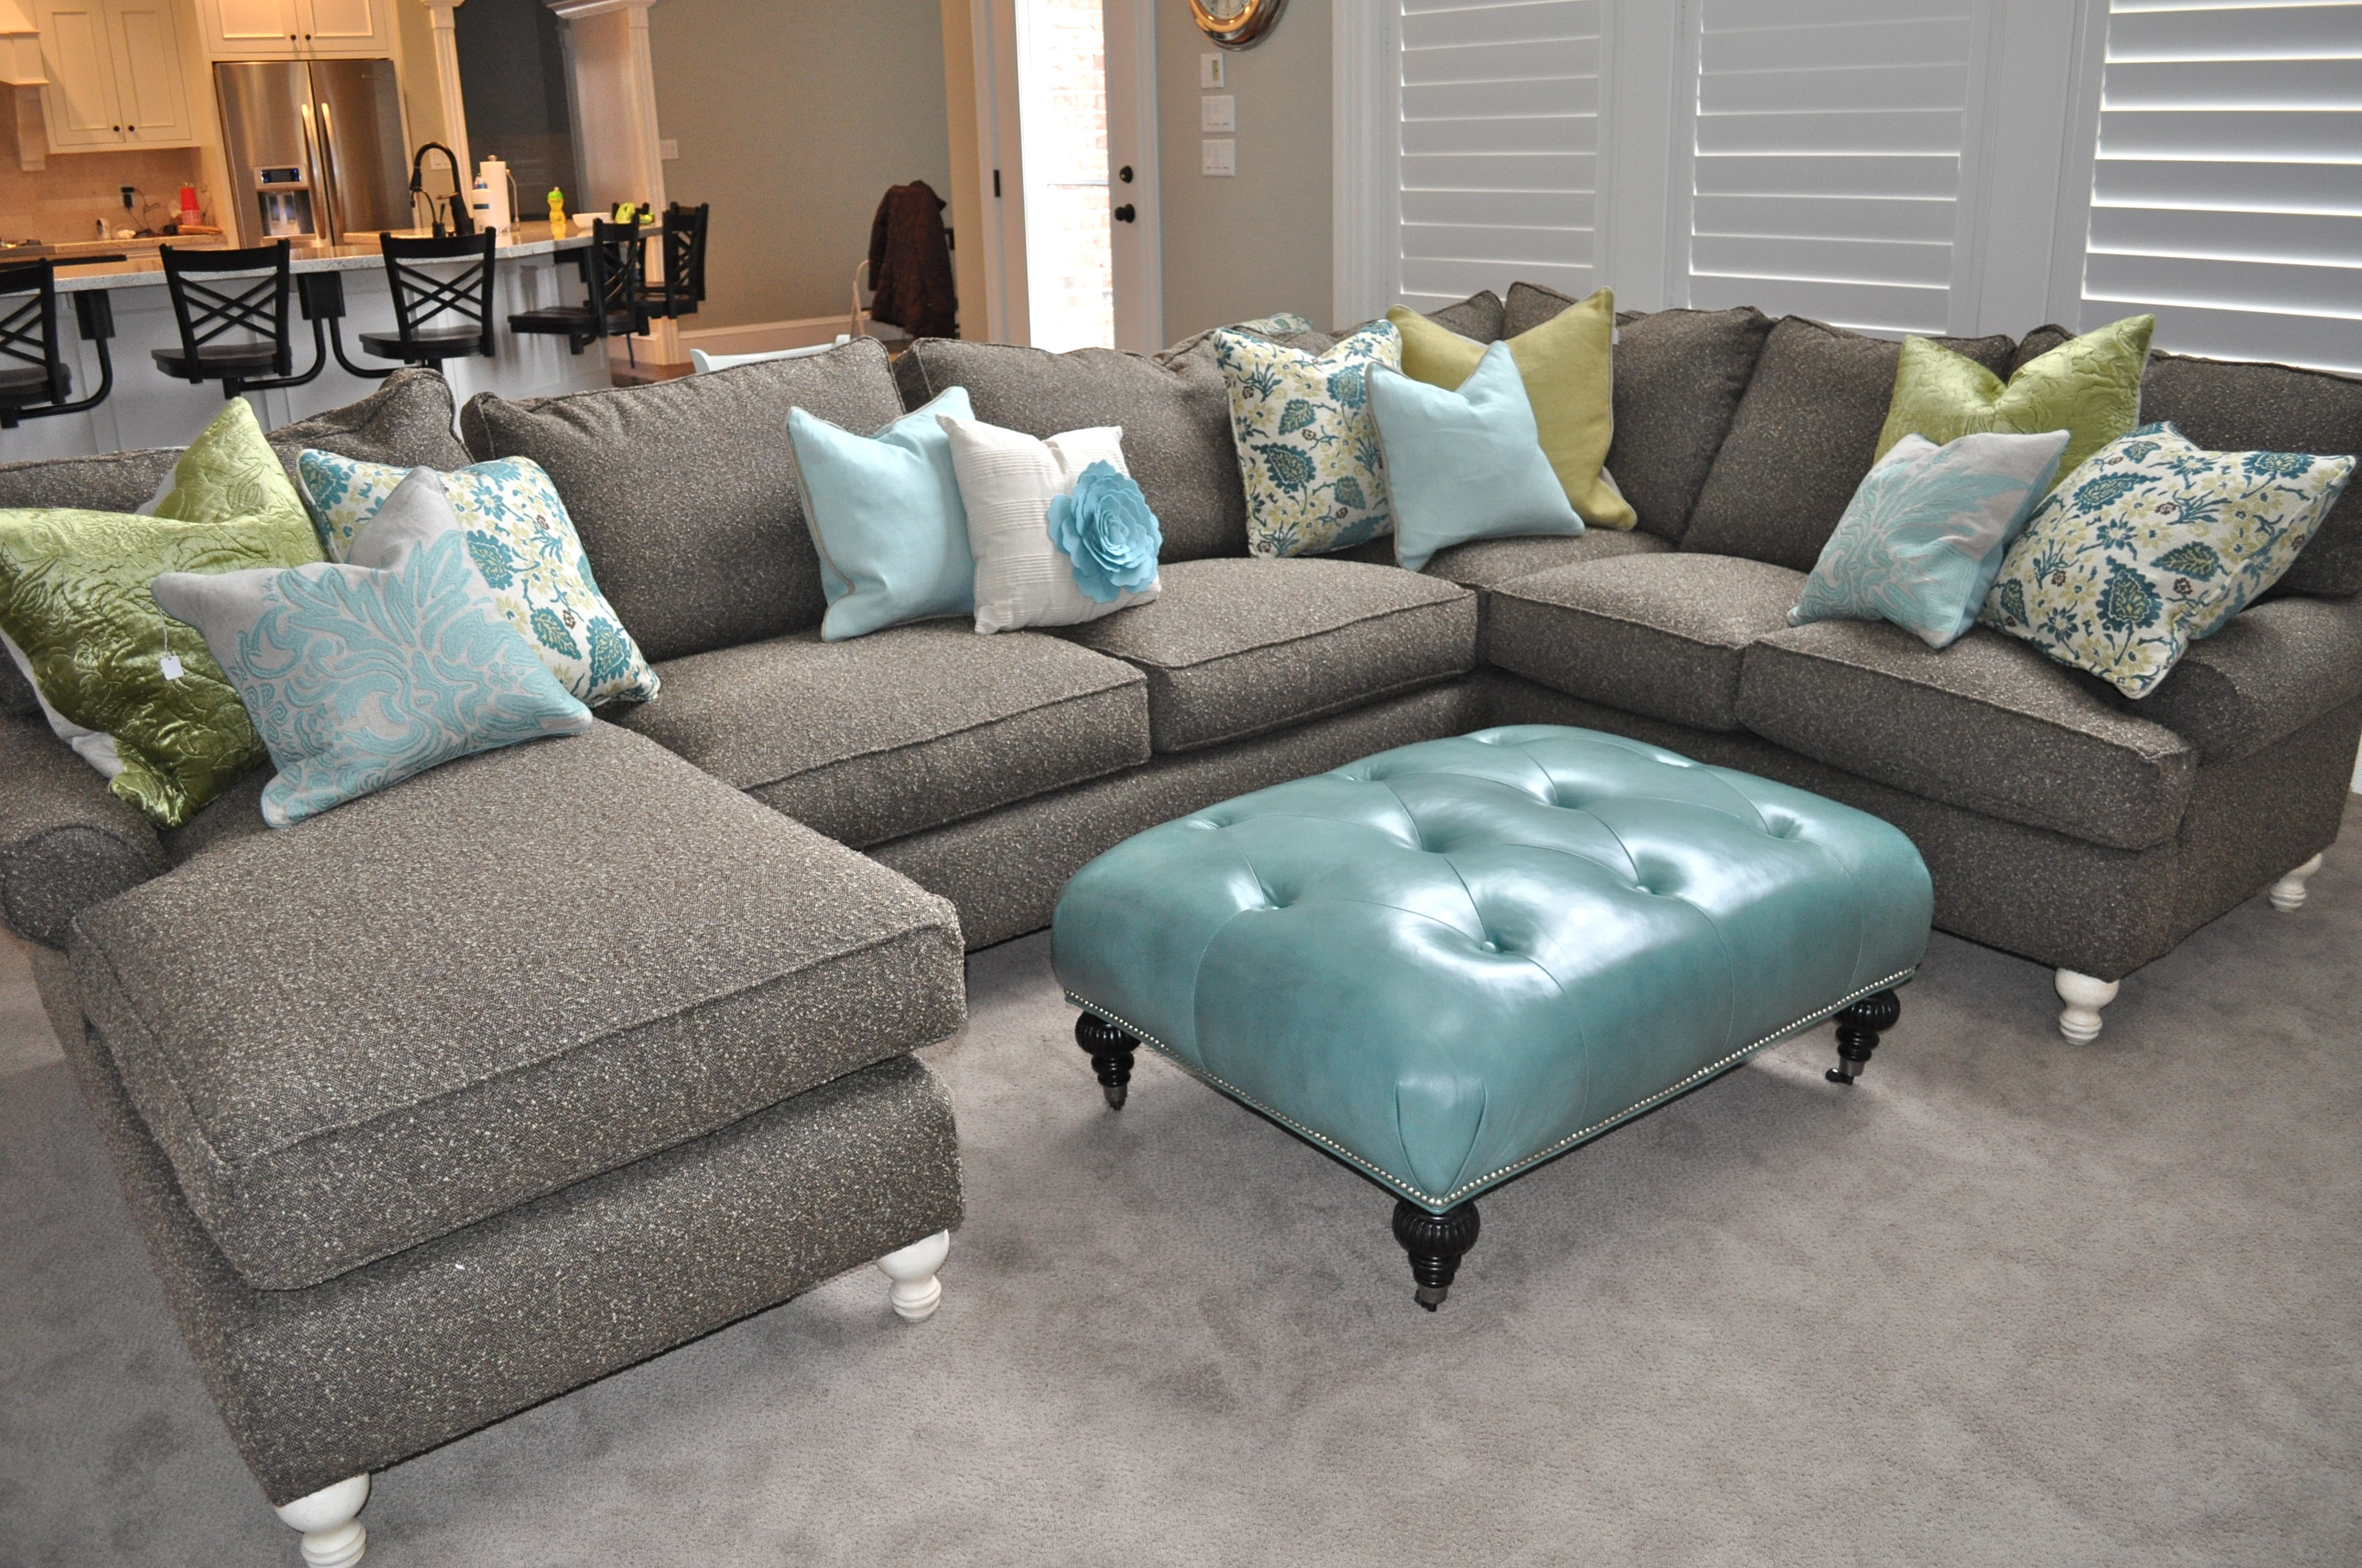 Depiction Of U Shaped Sectional With Chaise Design Furniture Throughout Colorful Sectional Sofas (View 11 of 15)